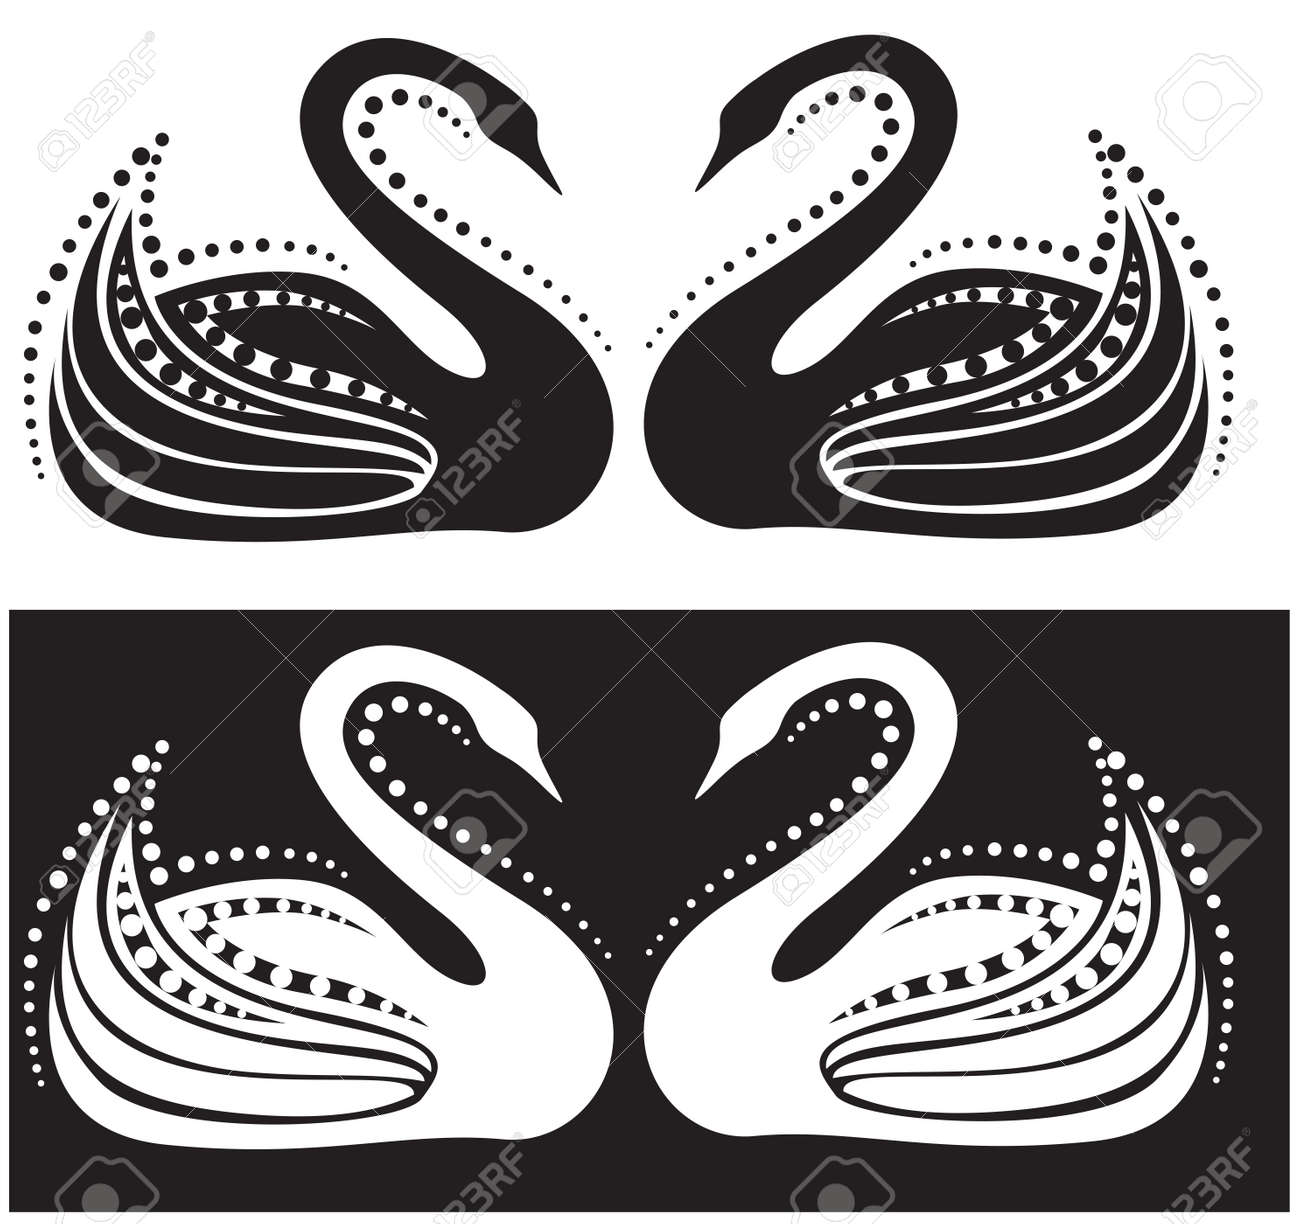 The stylized image of a pair of swans Stock Vector - 11085753